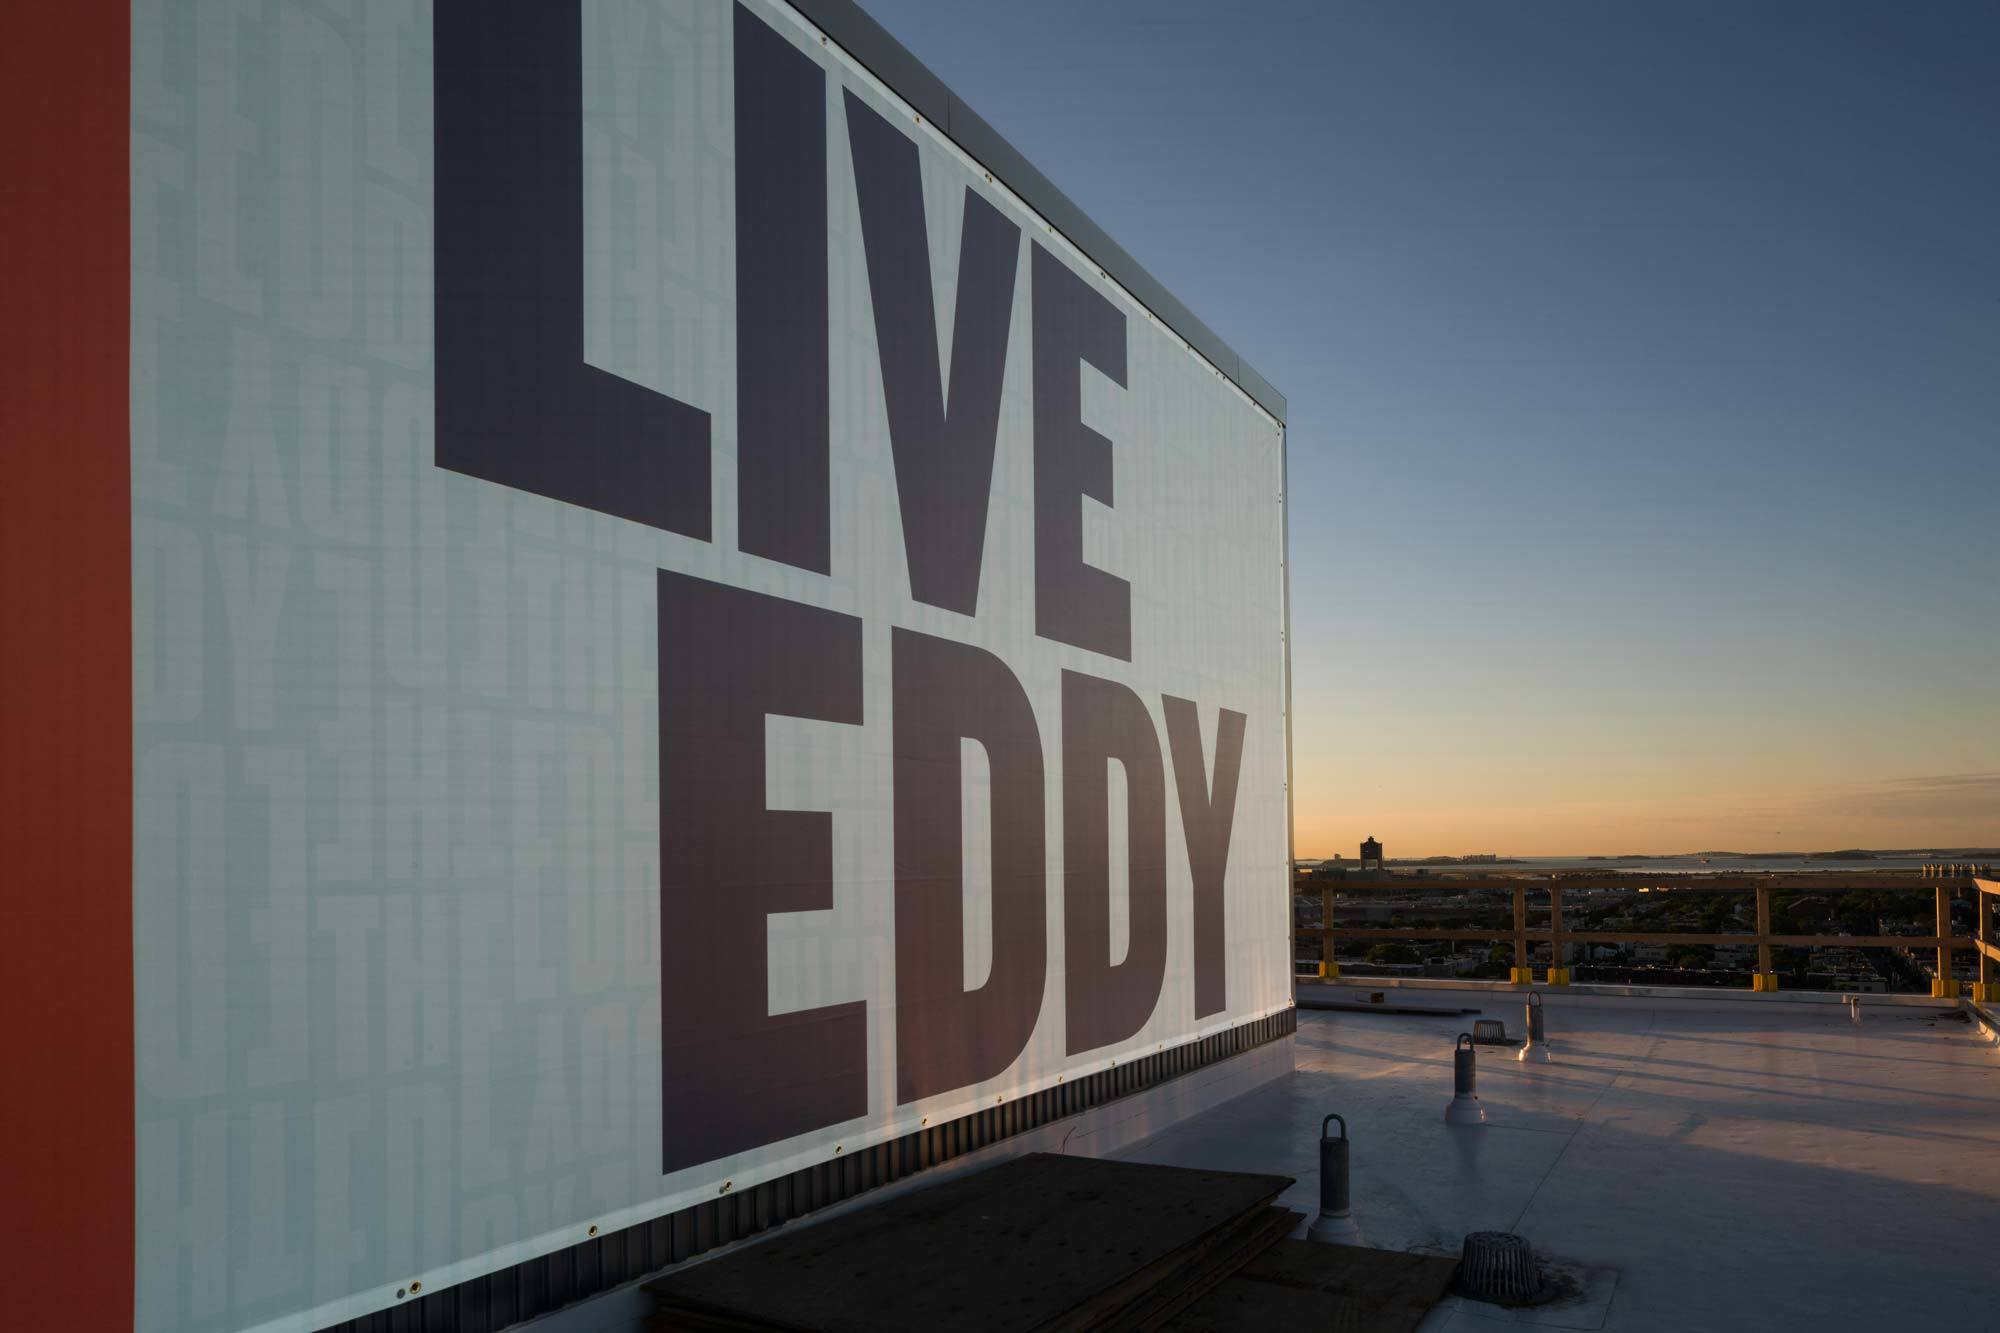 Live Eddy signage with views of water